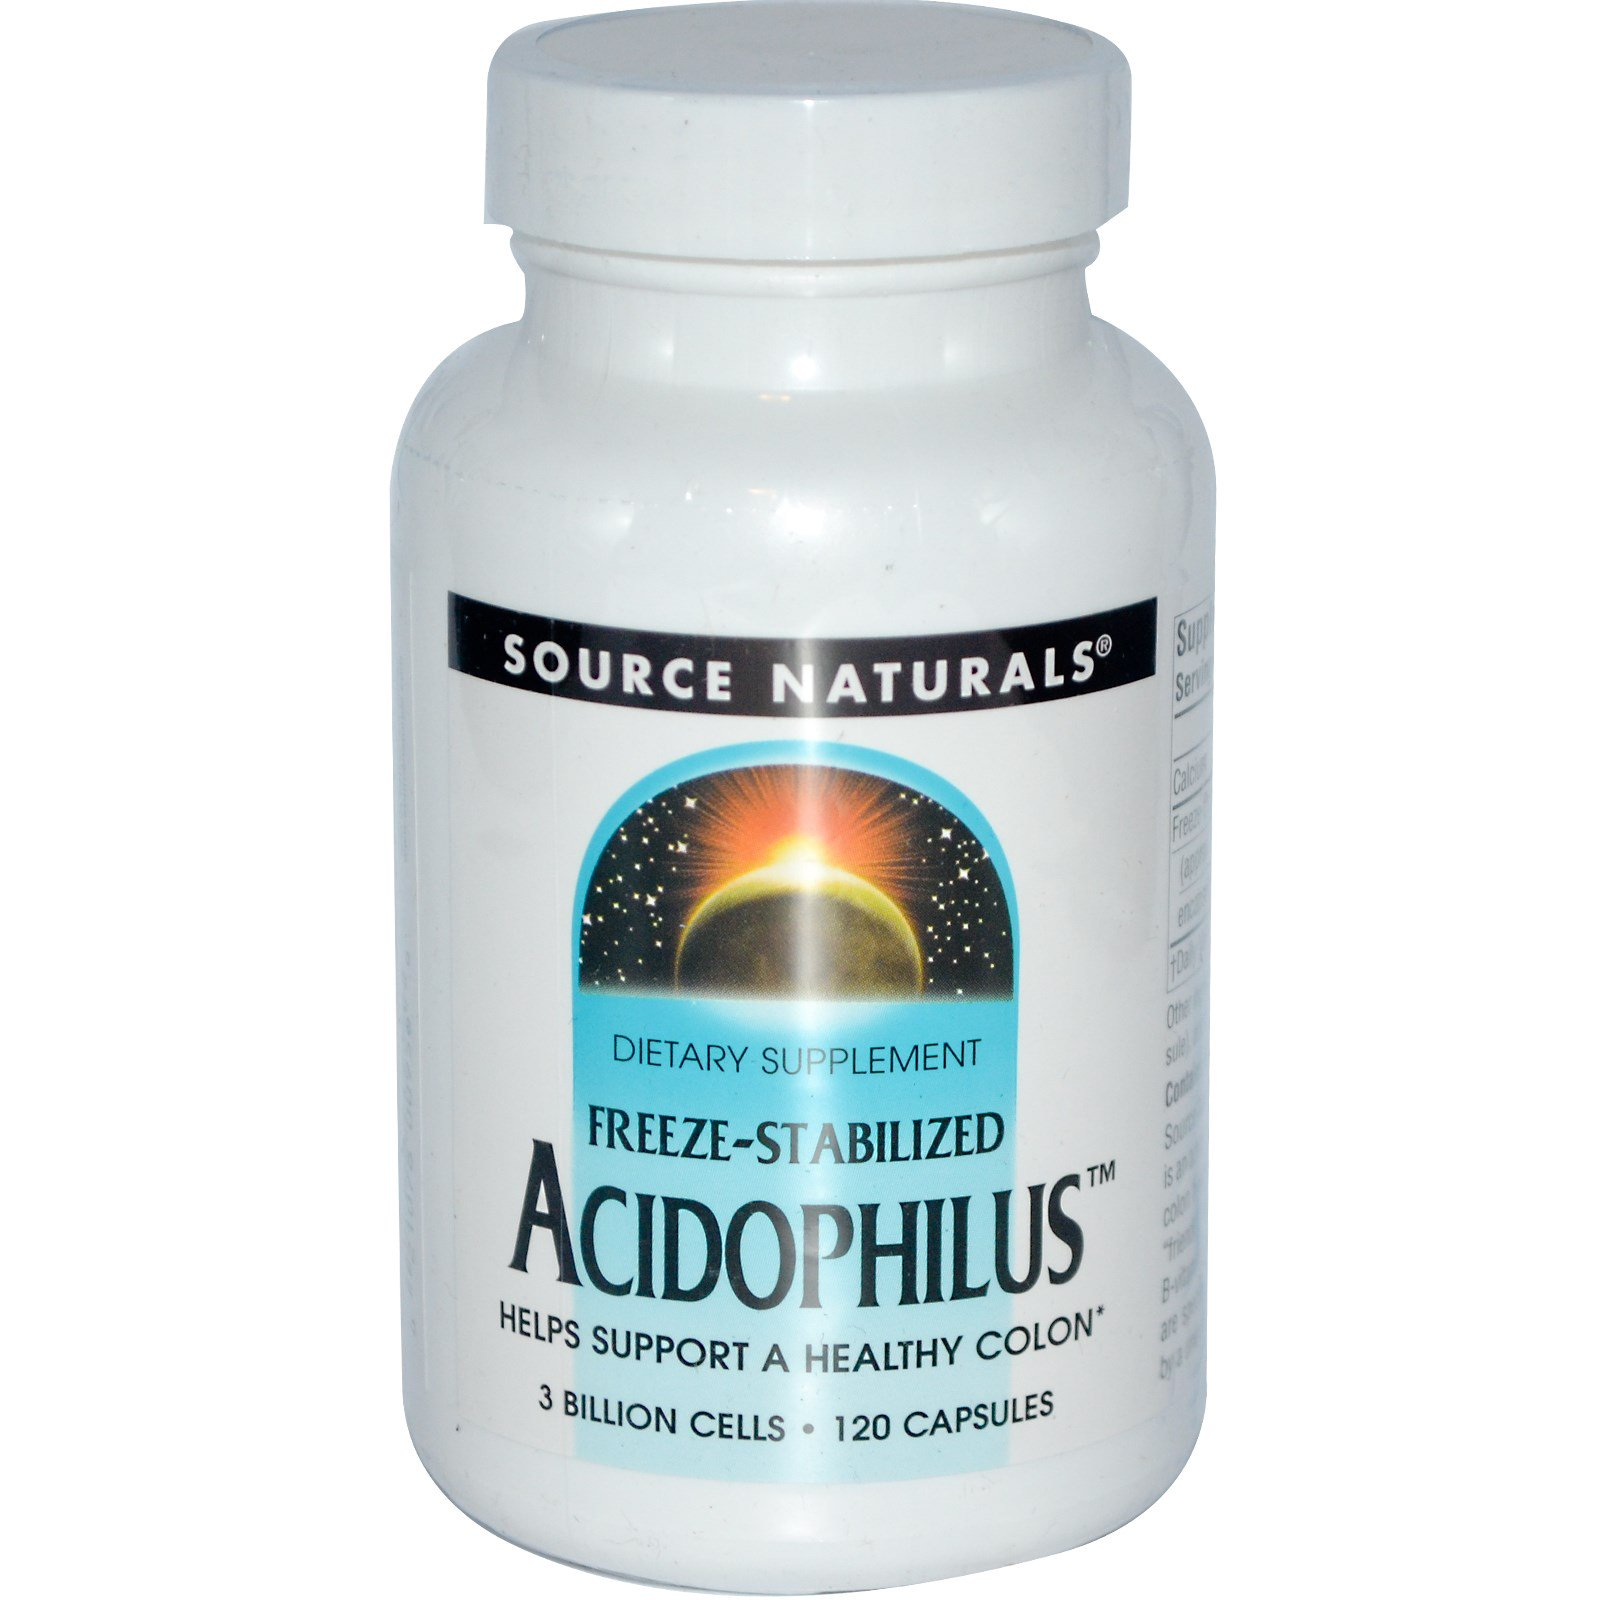 What is acidophilus pills